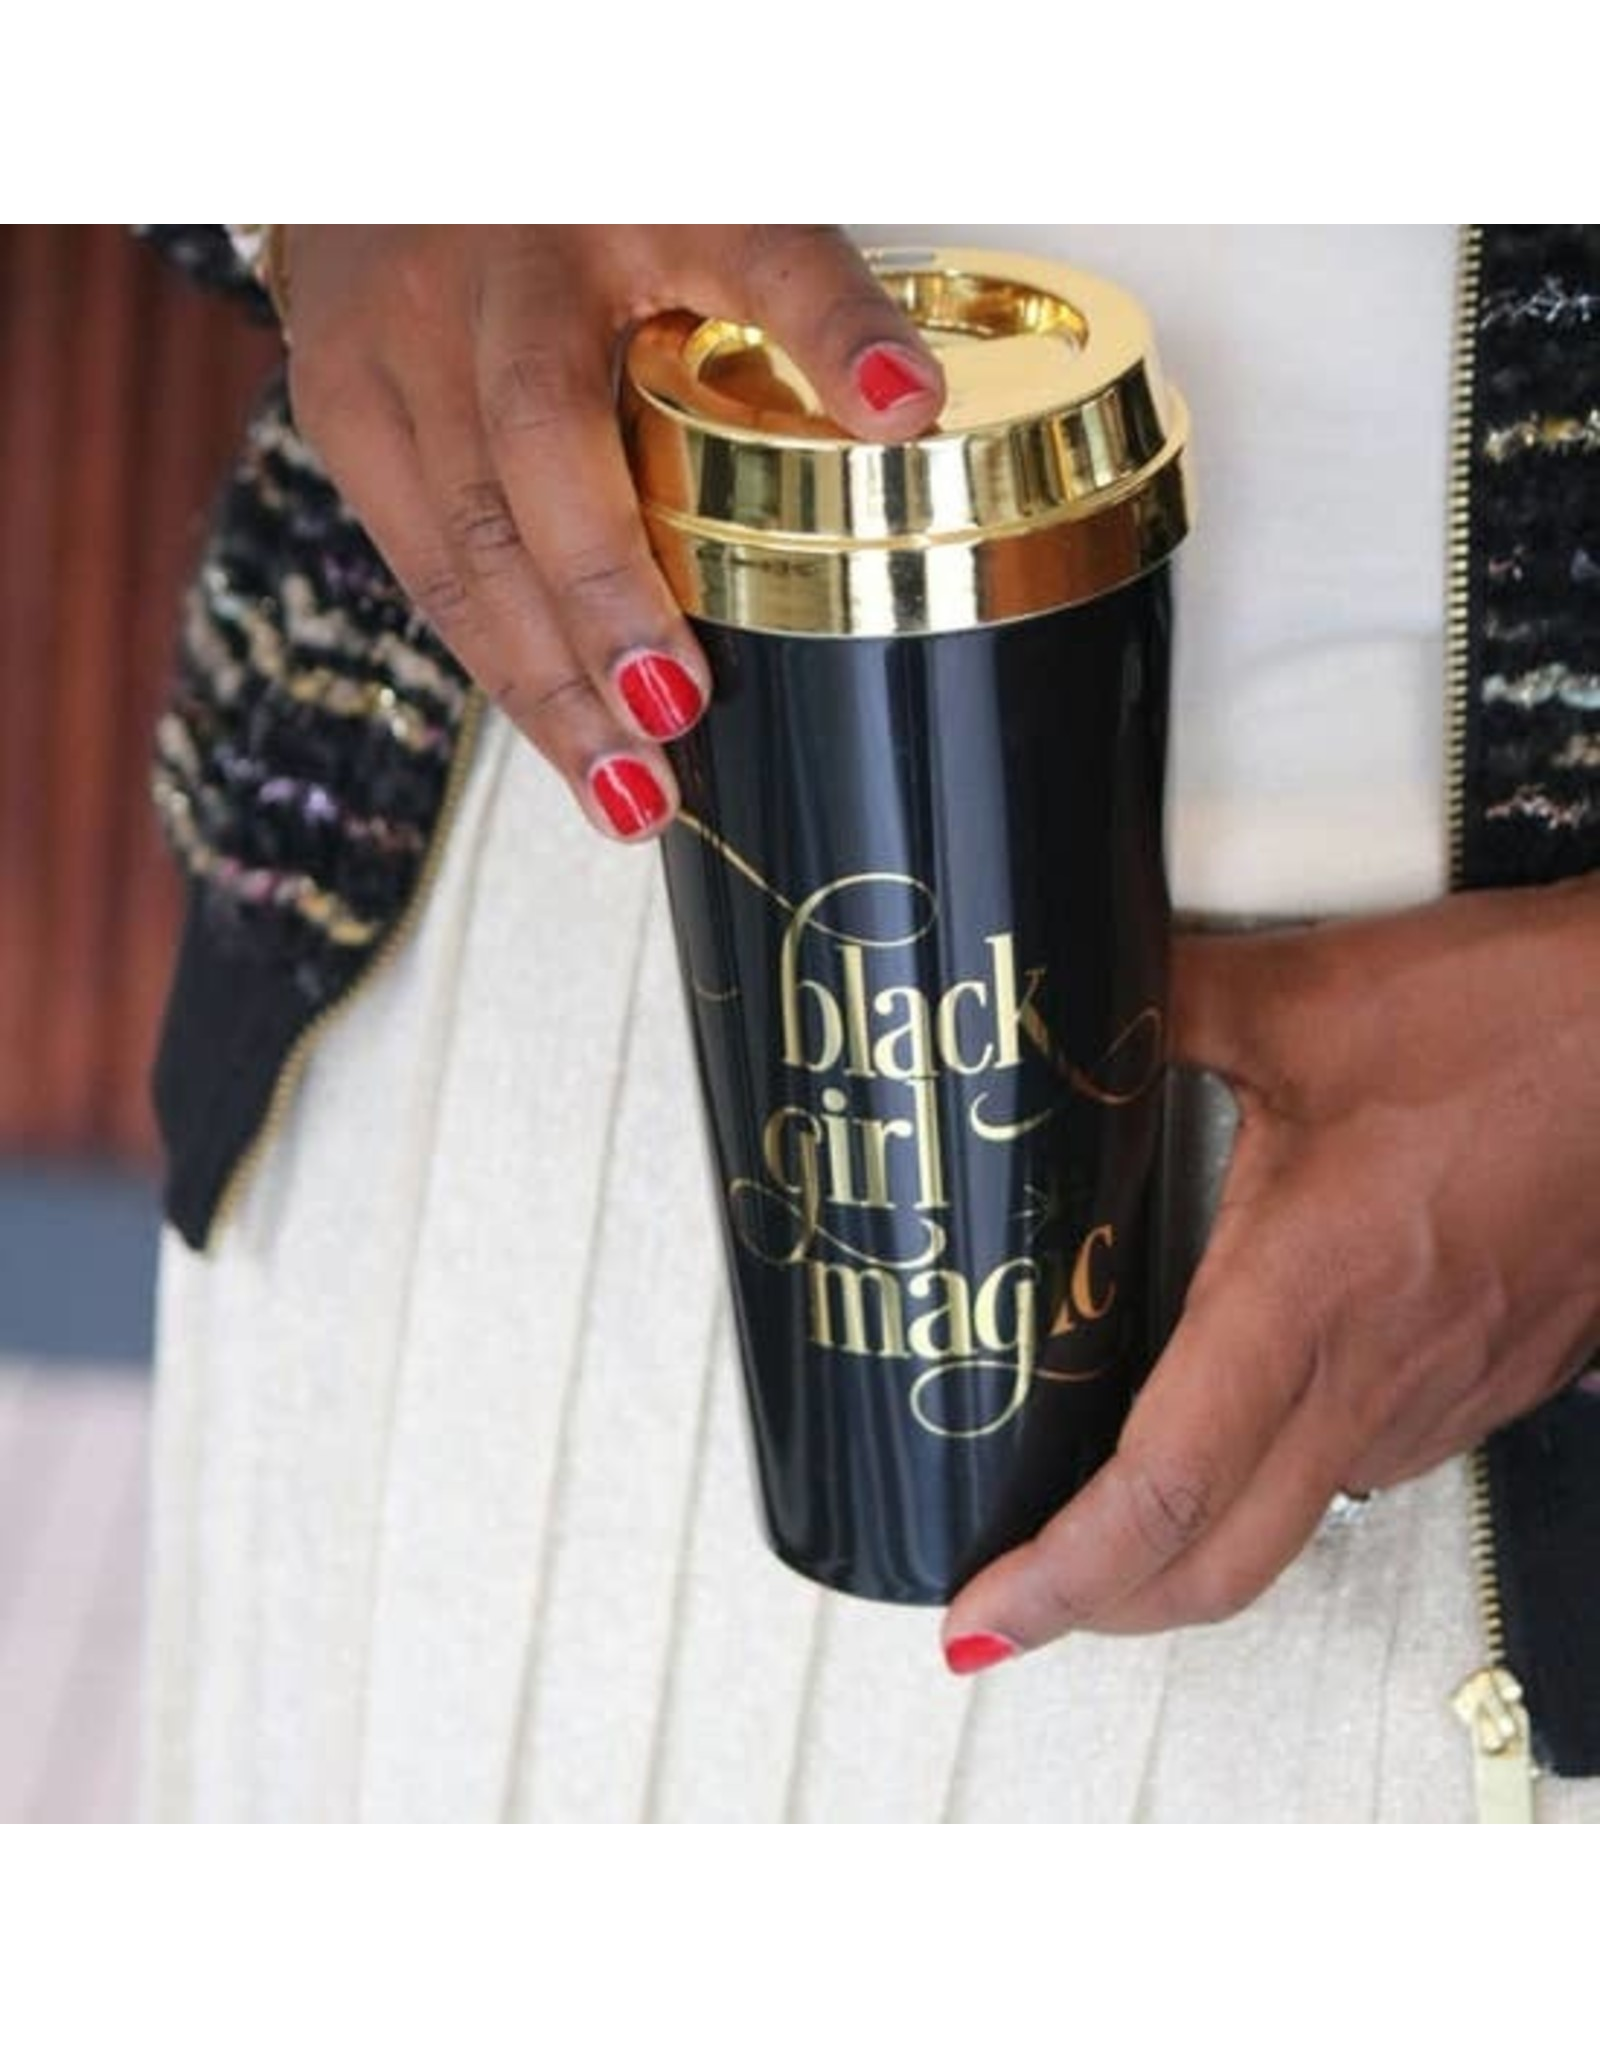 EFFIE'S PAPER BLACK GIRL MAGIC PLASTIC TRAVEL MUG